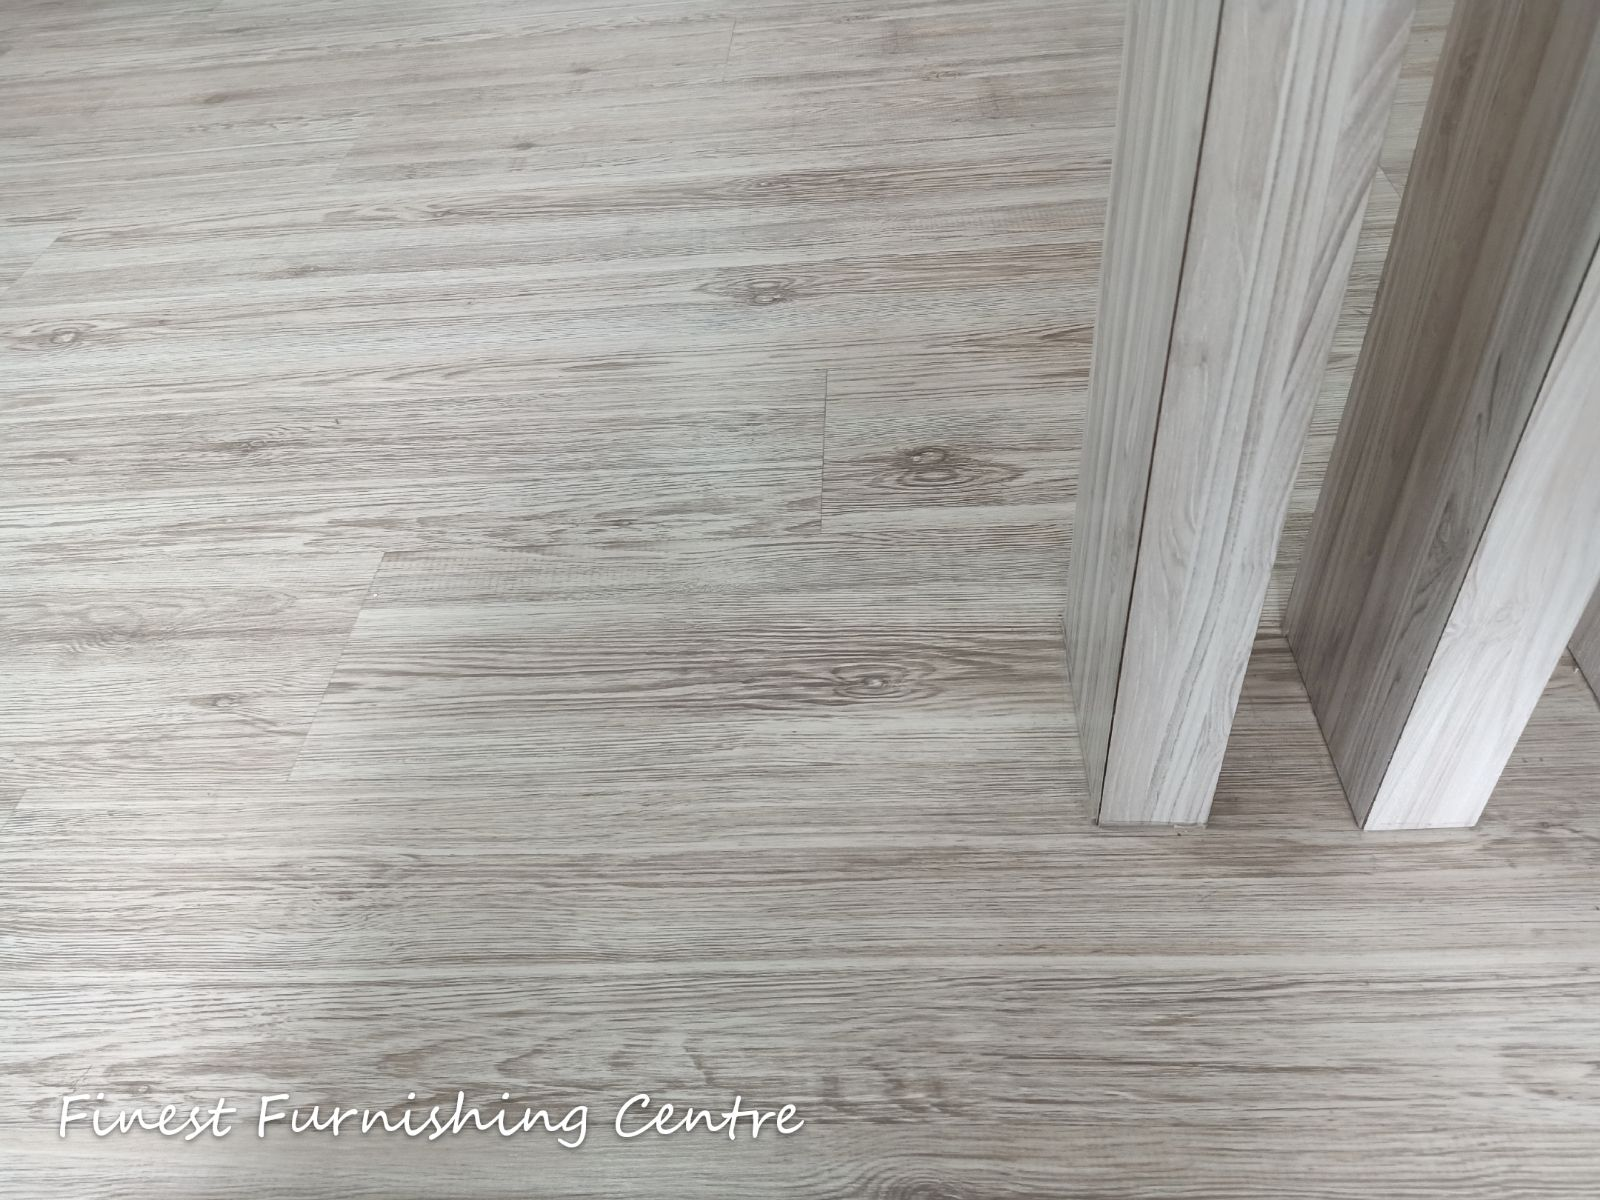 Wood Laminate -Greenfield Regency, johor